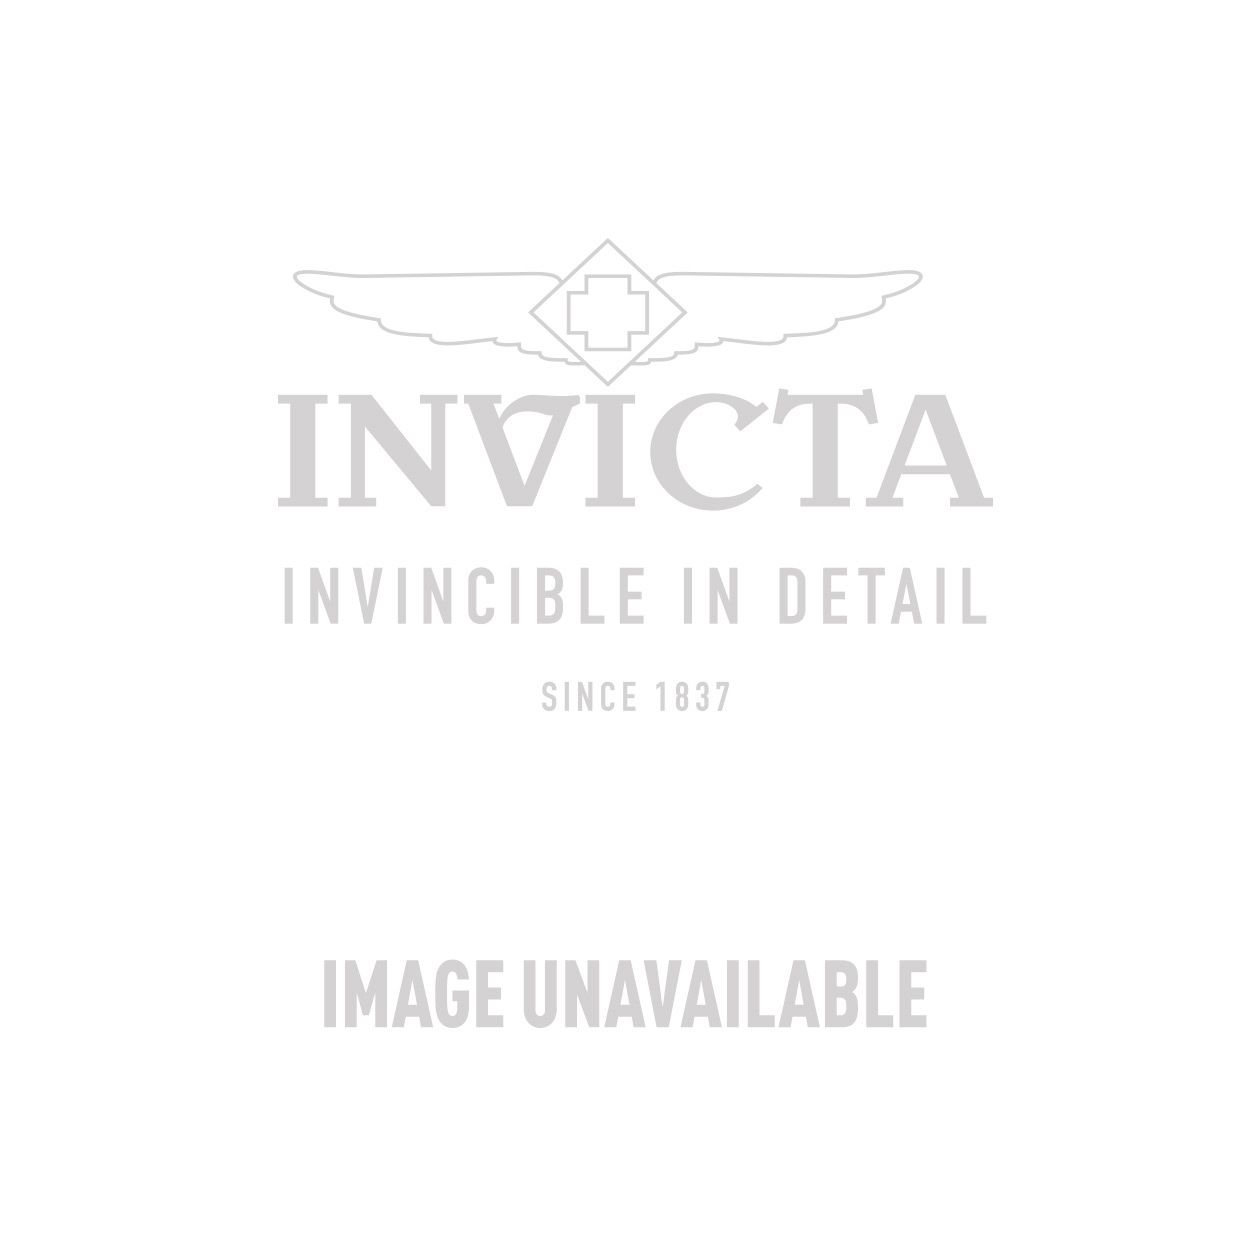 Invicta Specialty Swiss Movement Quartz Watch - Stainless Steel case Stainless Steel band - Model 1246